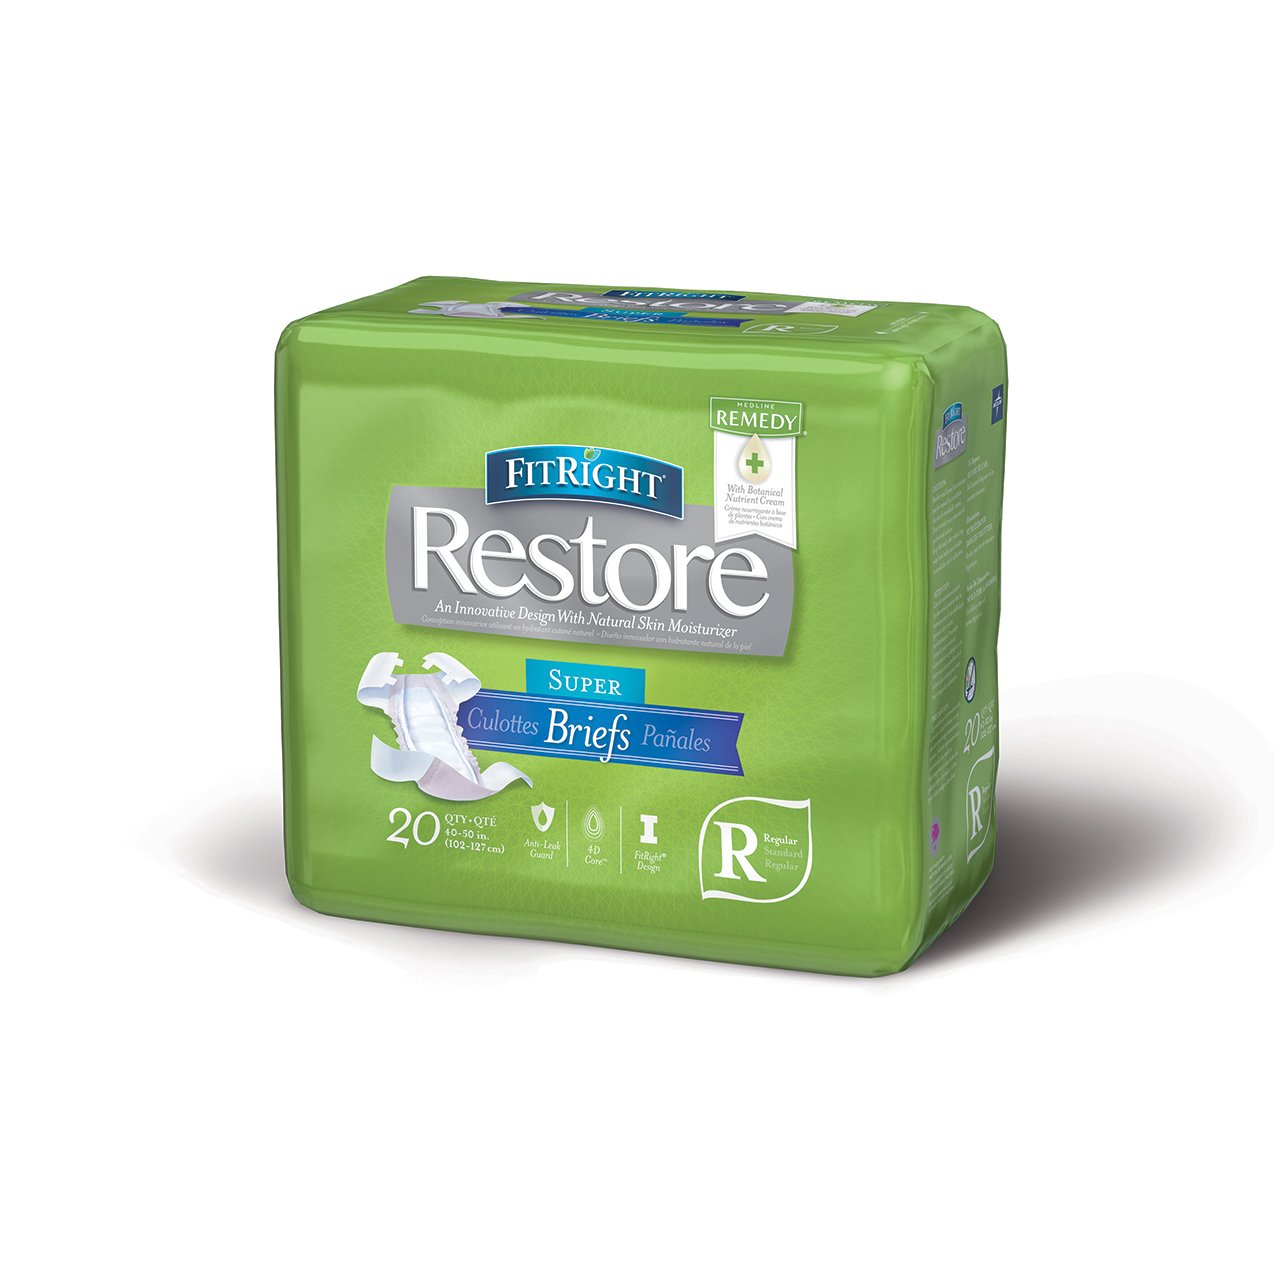 FitRight Restore Adult Briefs with Tabs, Maximum Absorbency, Regular, 40''-50'', For Adult Incontinence, Comfort and Skin Health, 4 packs of 20 (80 total)